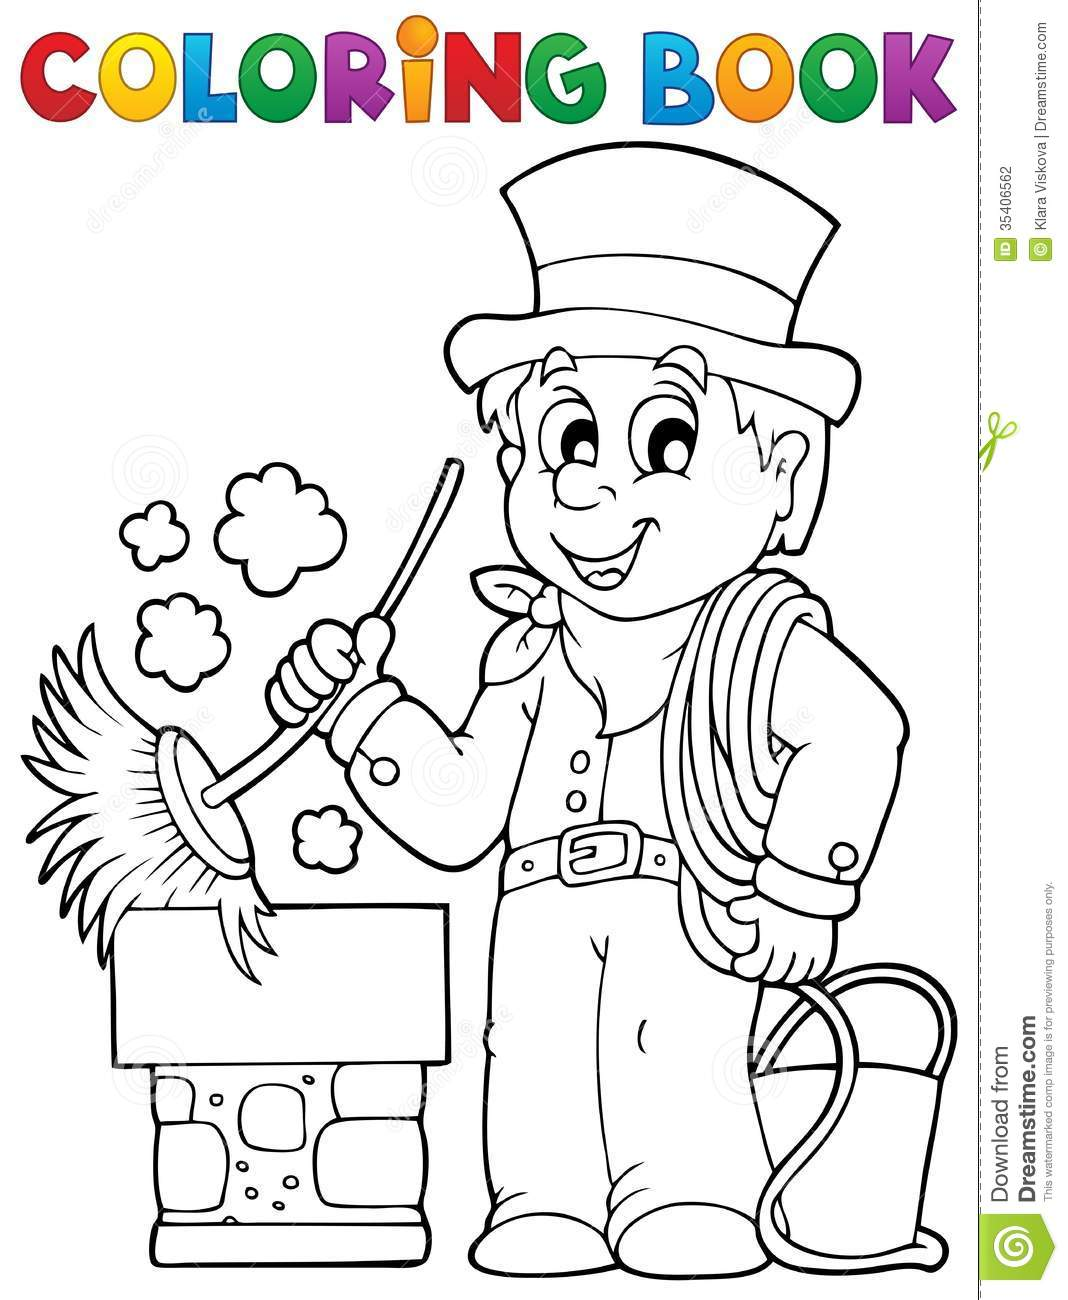 1068 x 1300 jpeg 134kB, Coloring book chimney sweeper - eps10 vector ...